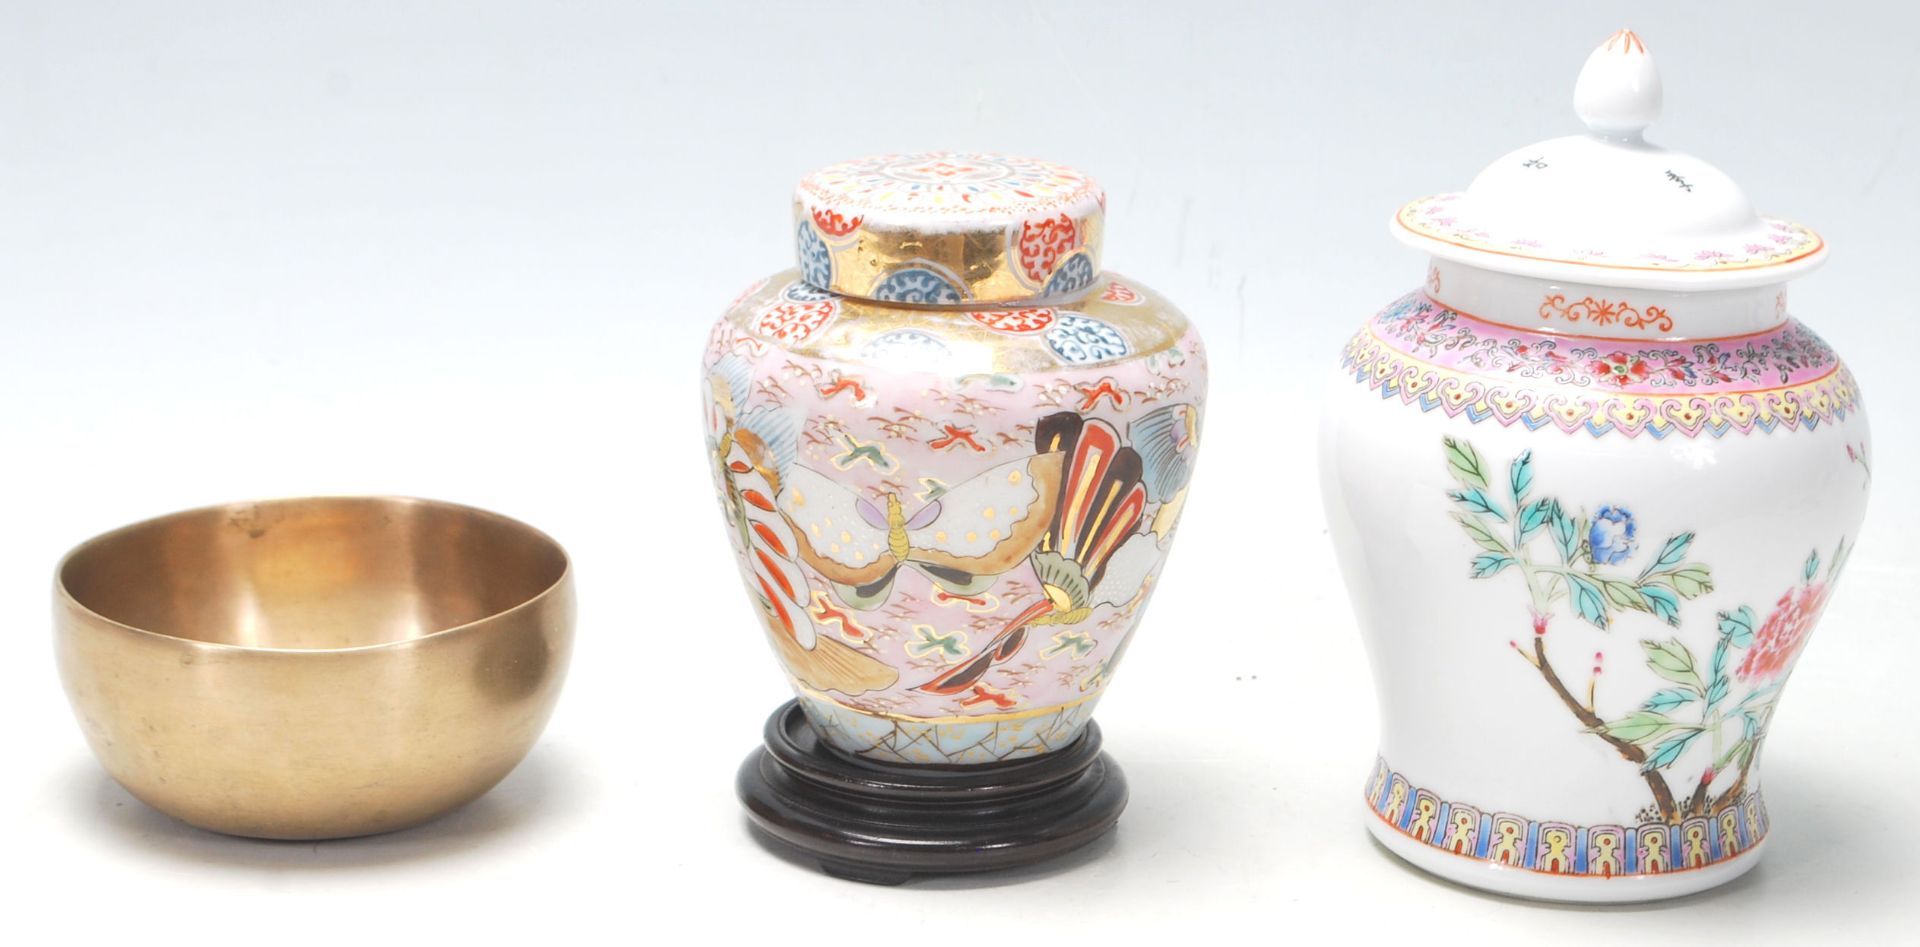 Los 139 - A Chinese republic period lidded jar with calligraphy writing on the back and nature scene at the